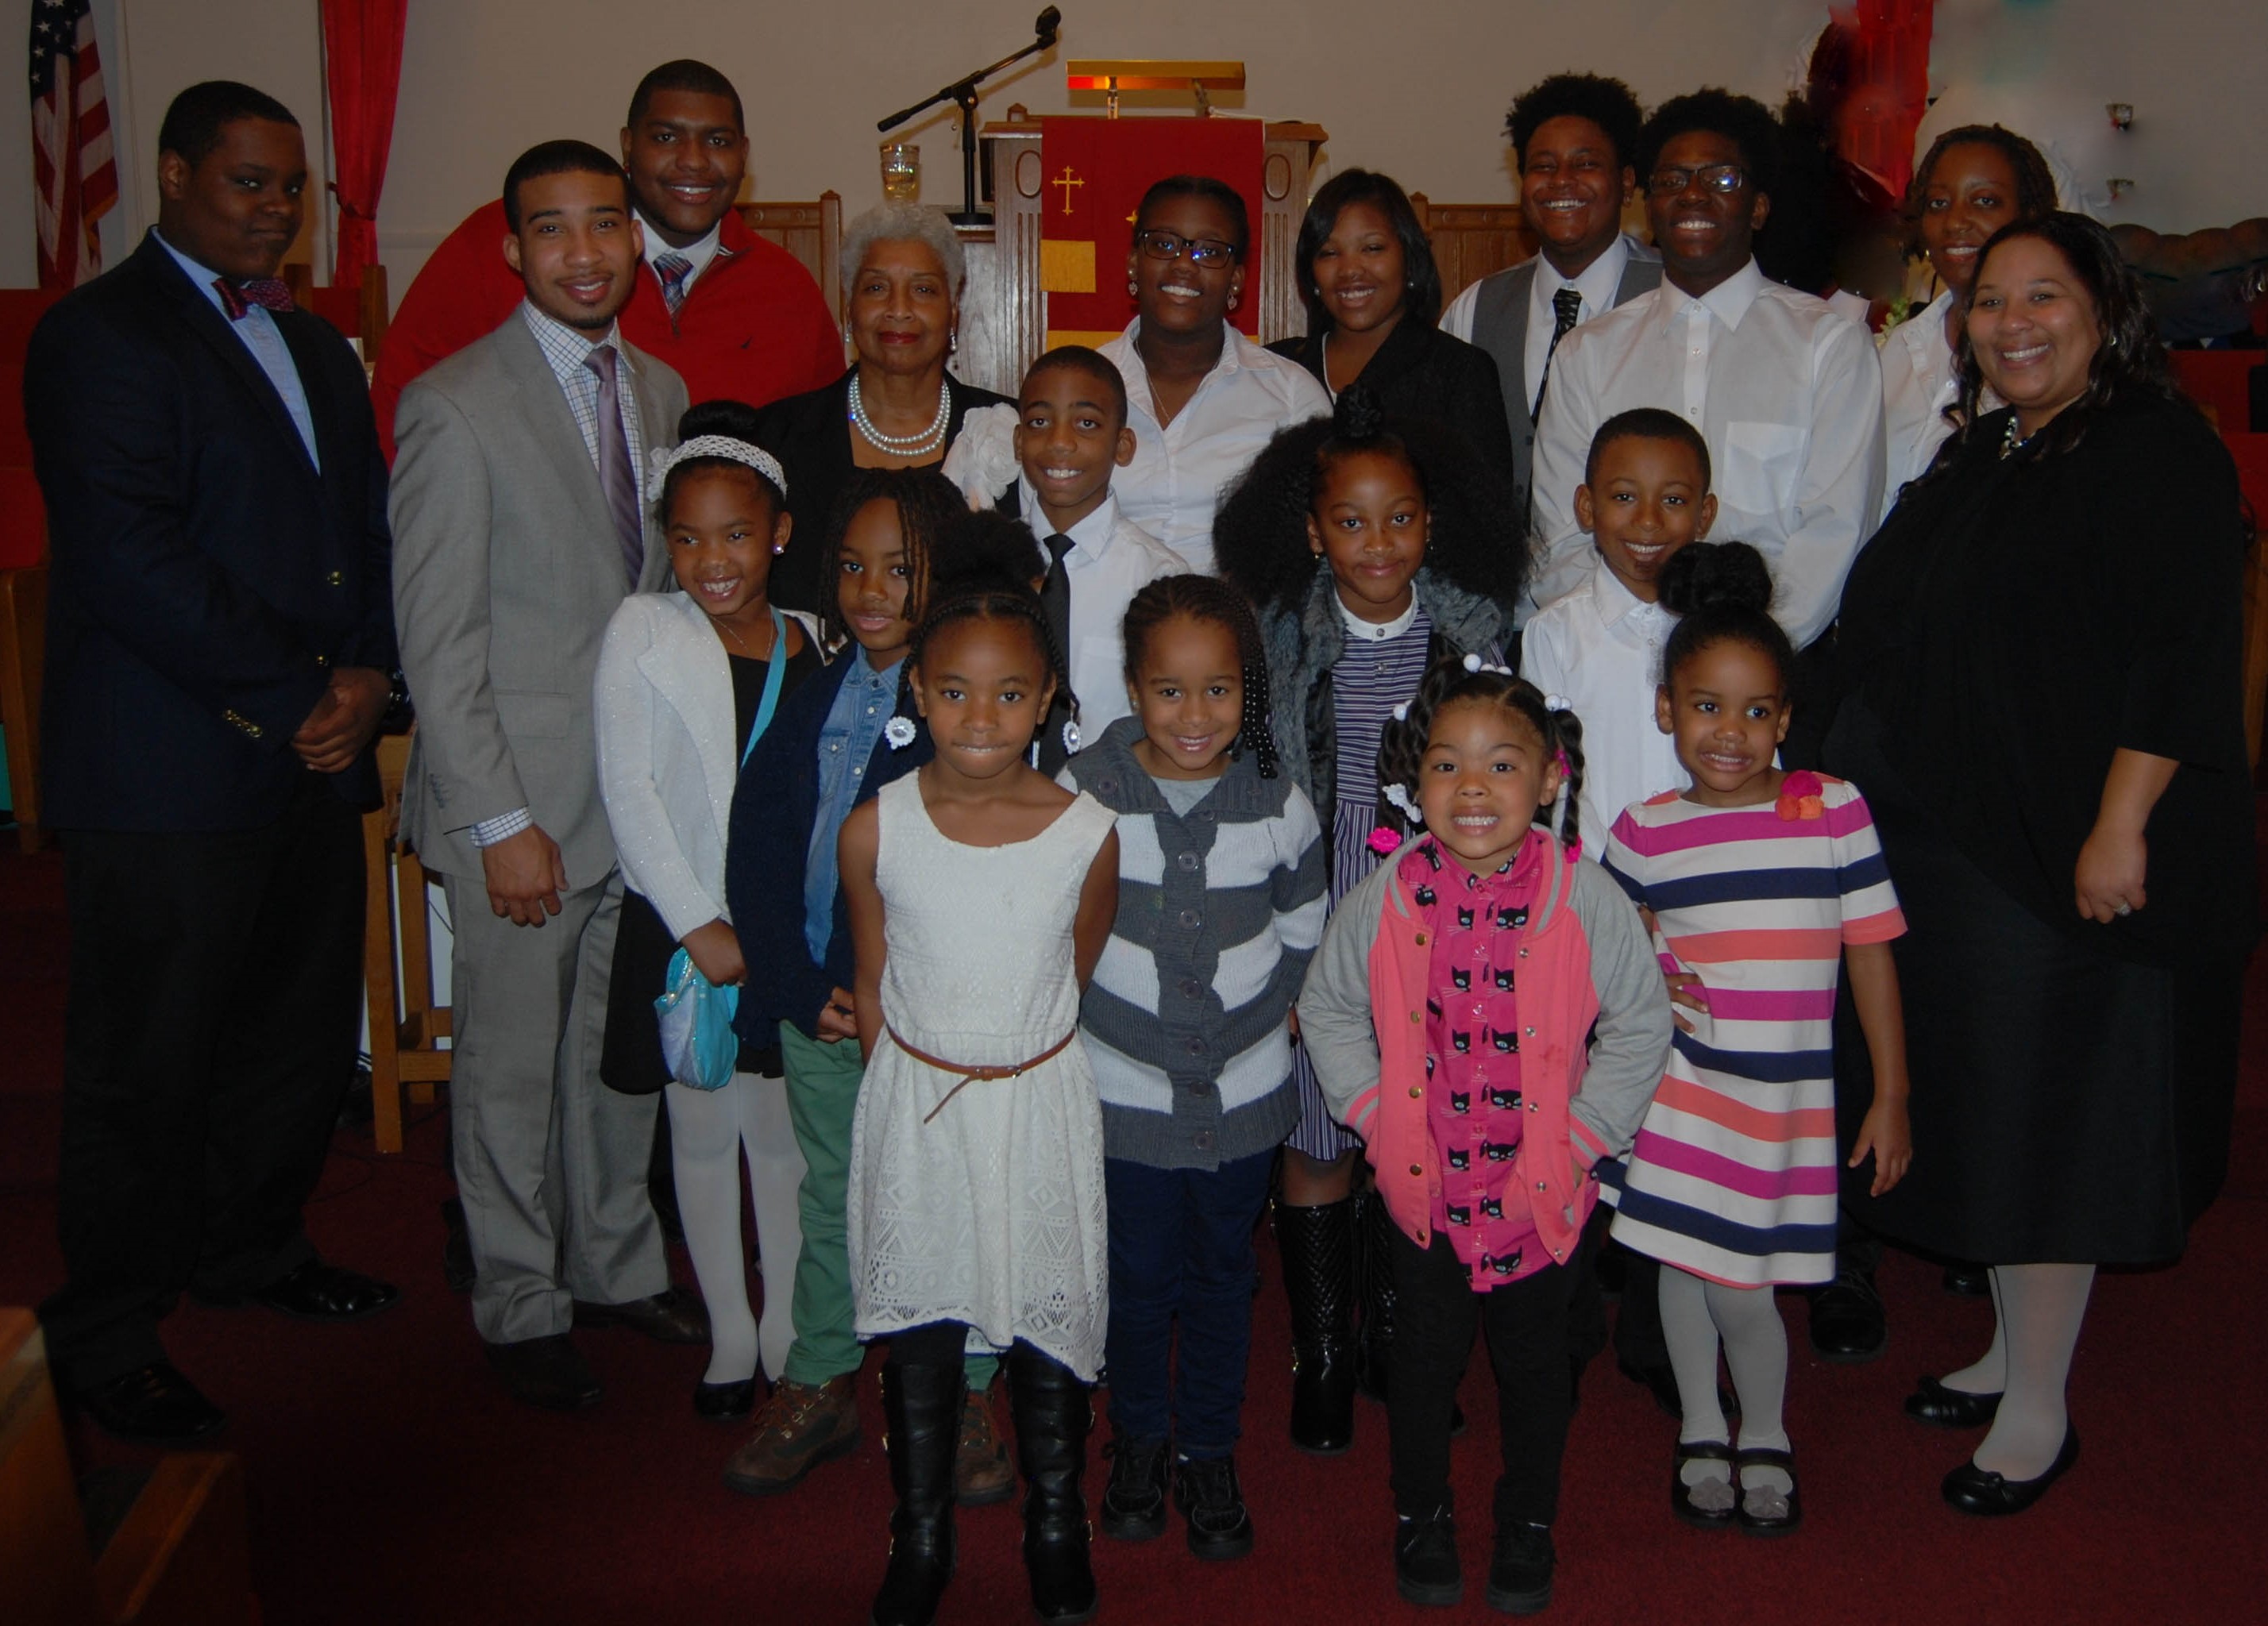 Morgan Jr. Ministry